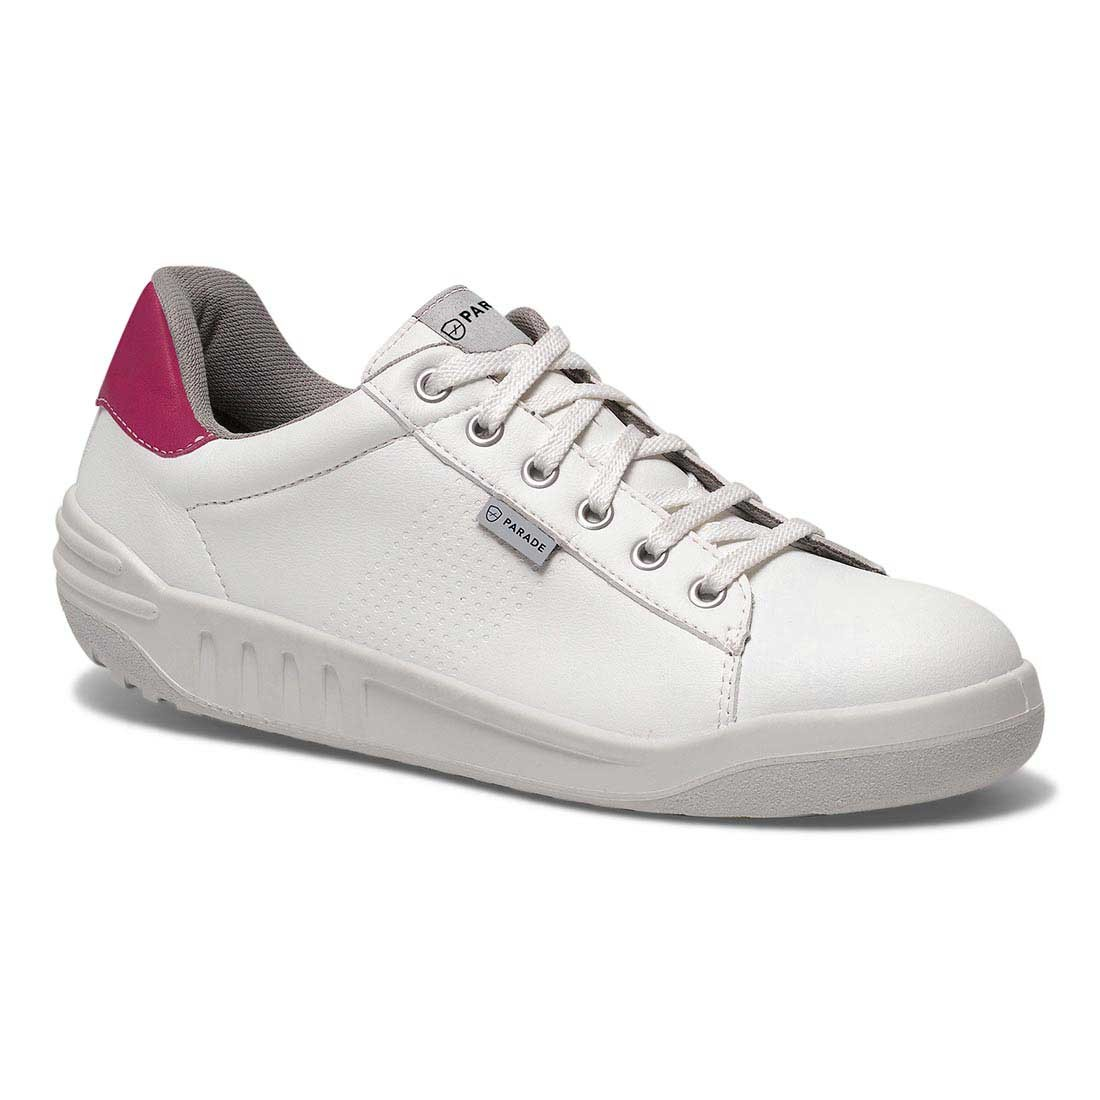 Parade Ladies White Jamma Safety Trainers With Vps Premium Comfort System